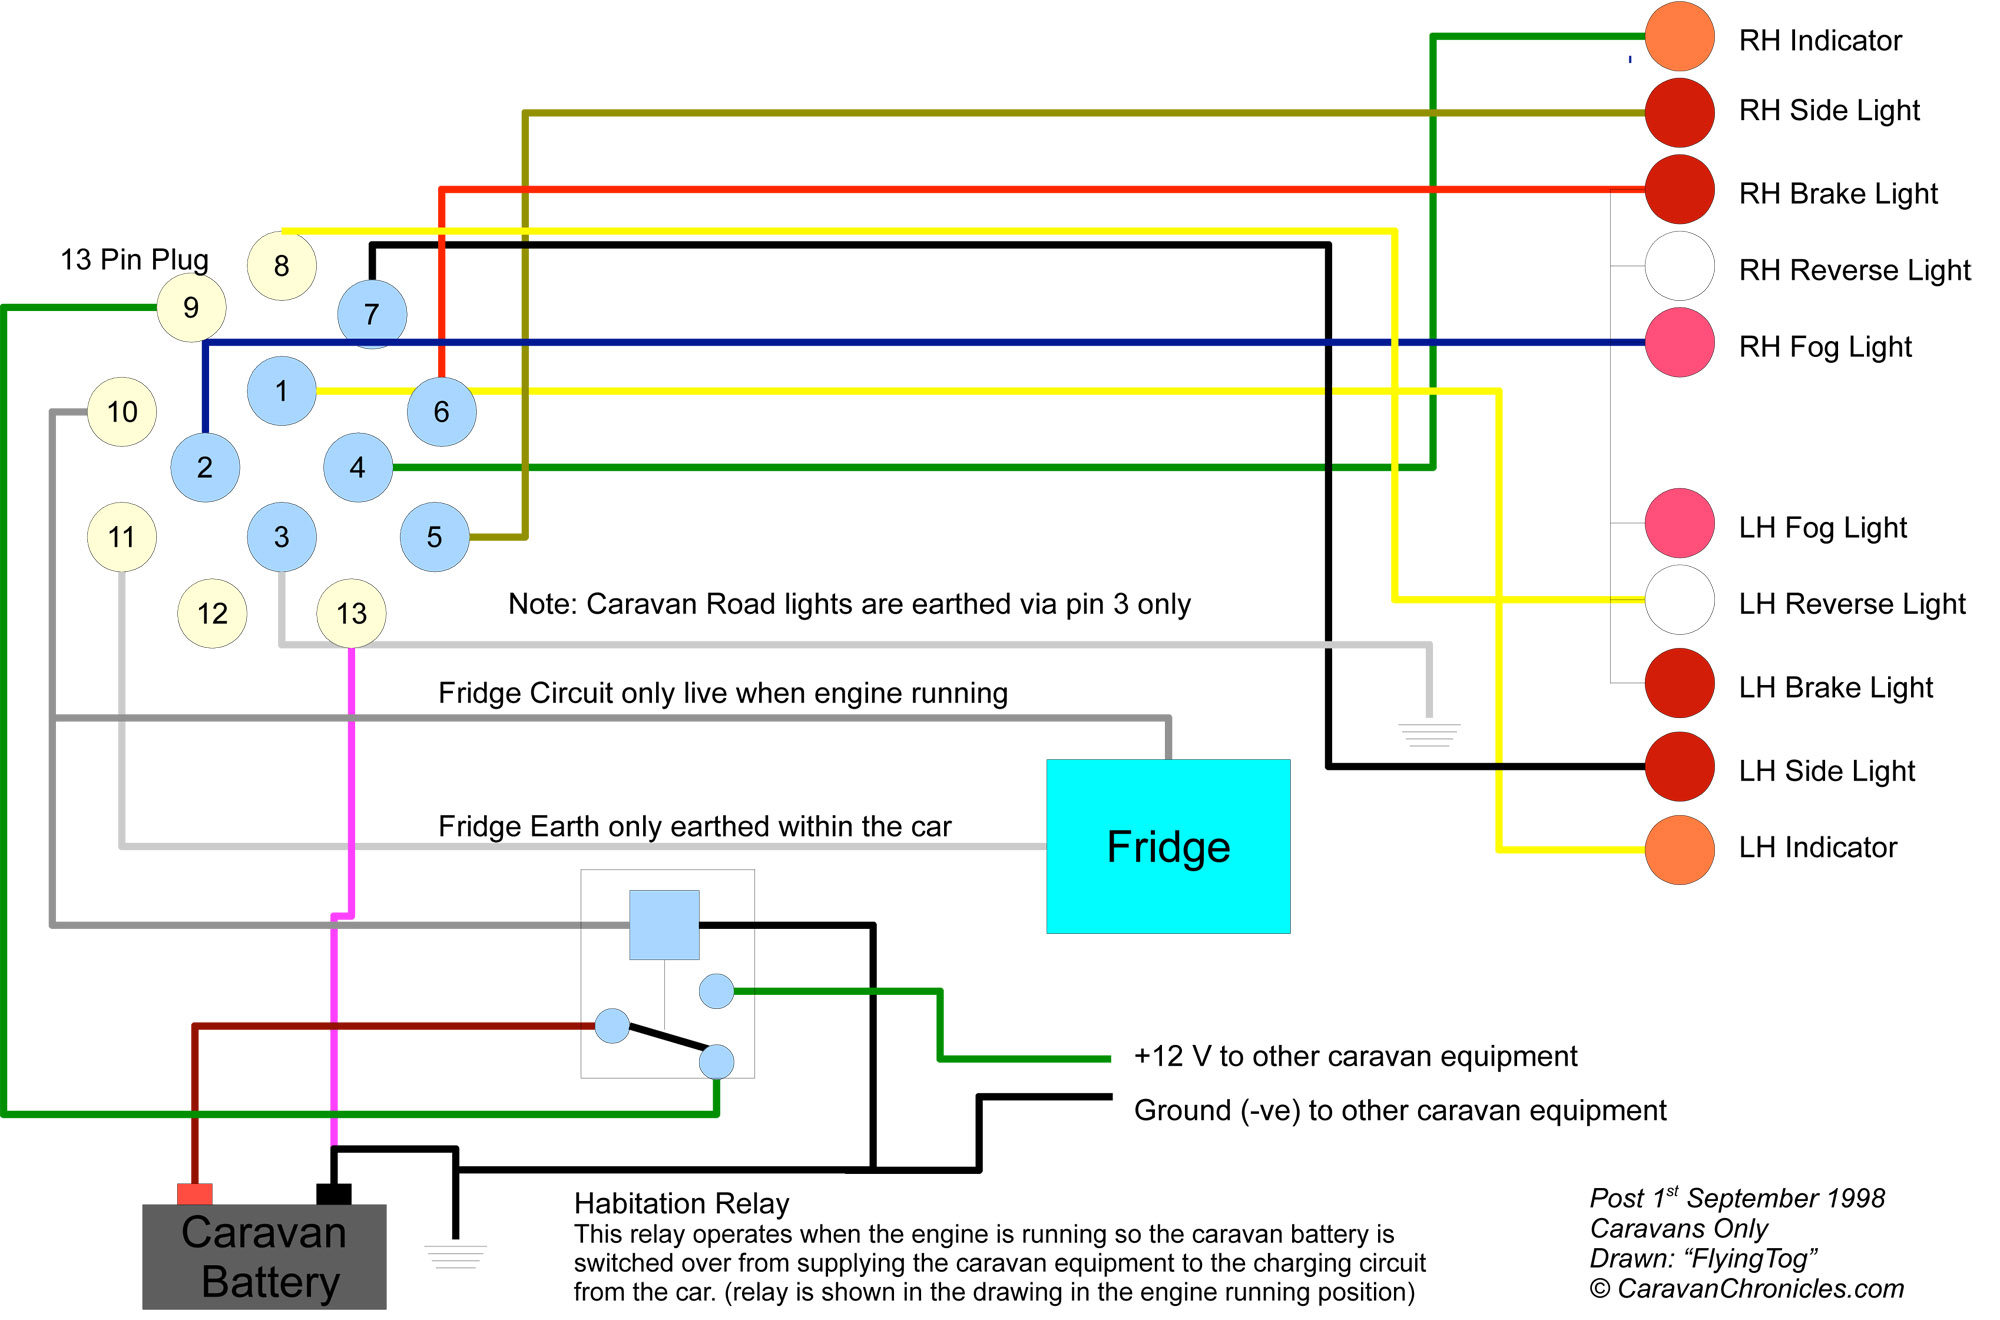 caravan wiring 13 pin understanding caravan and tow car electrics caravan chronicles 12 volt wiring diagram for caravan at webbmarketing.co